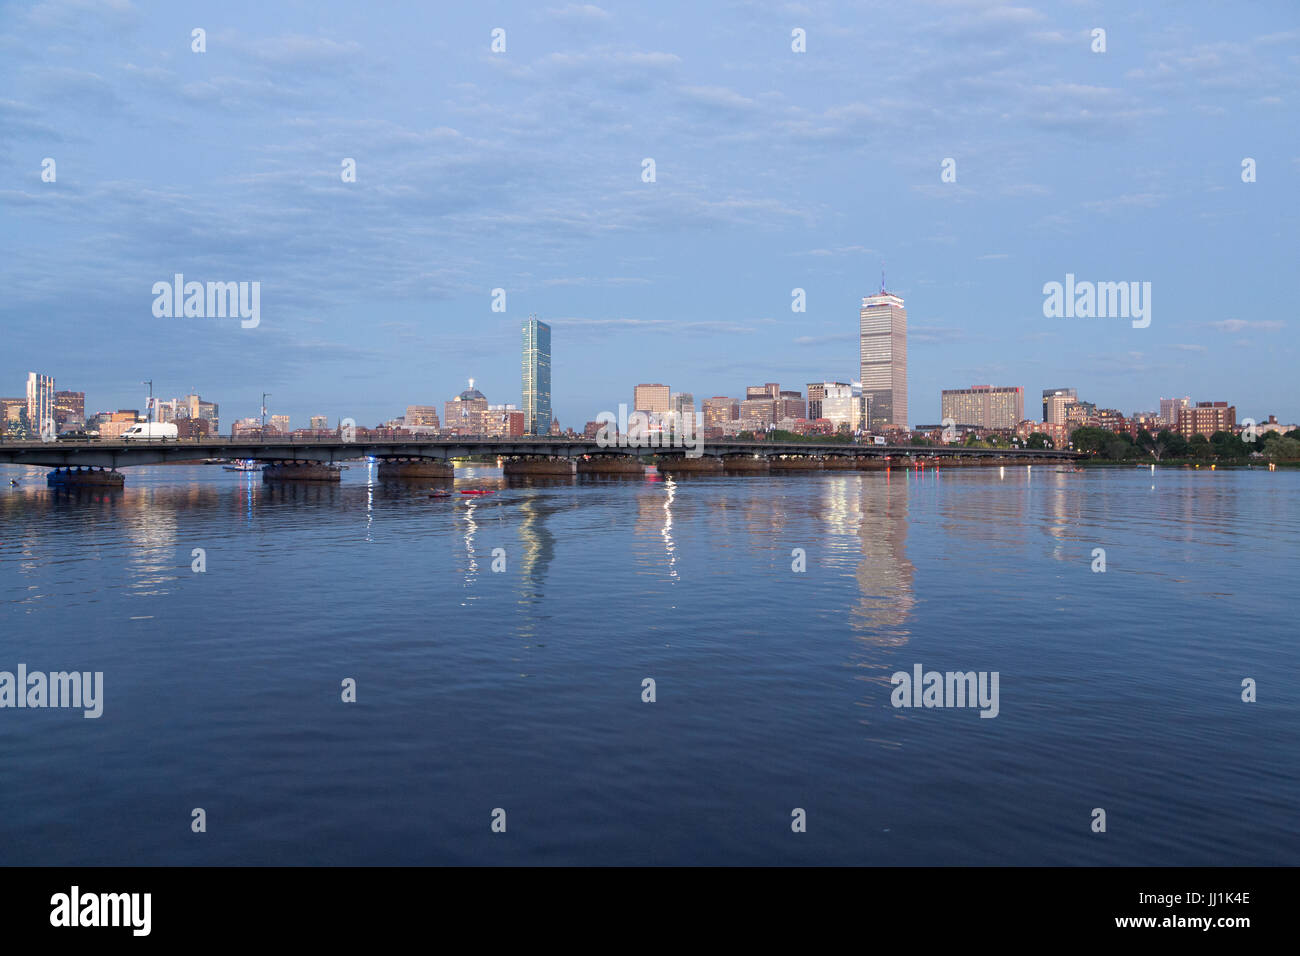 A photograph of the Boston skyline as seen from the Charles River waterfront on the 4th of July 2017. Taken at golden - Stock Image